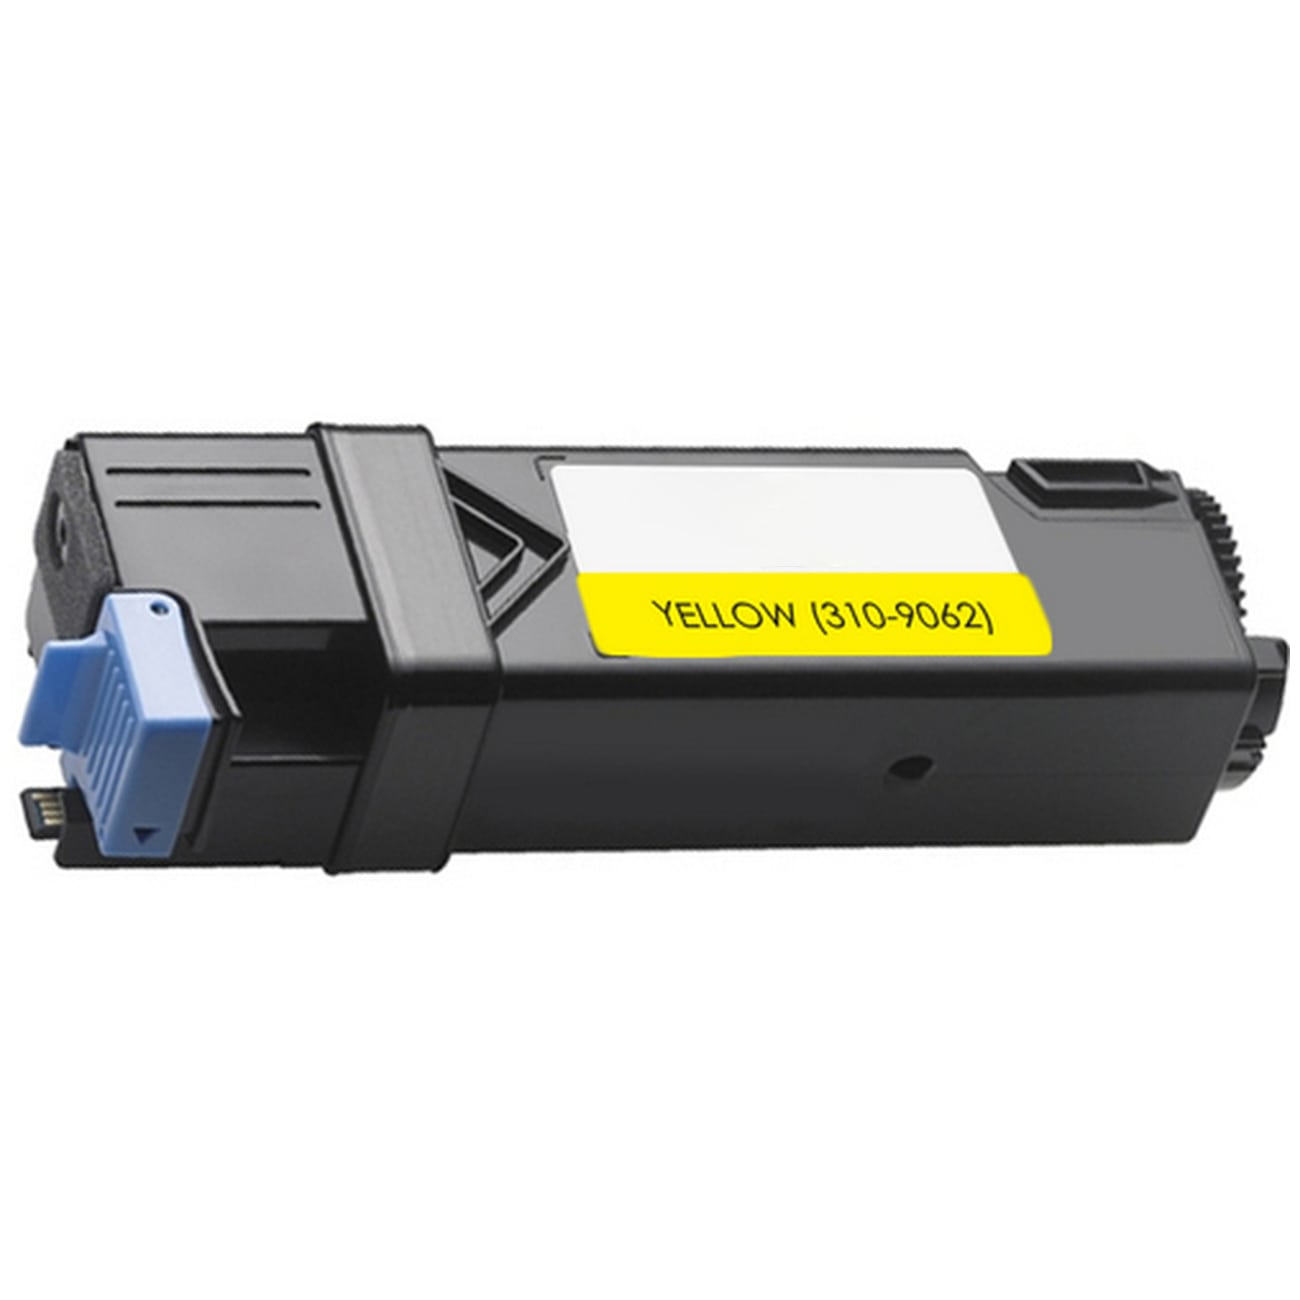 310-9062 Toner Cartridge - Dell New Compatible  (Yellow)